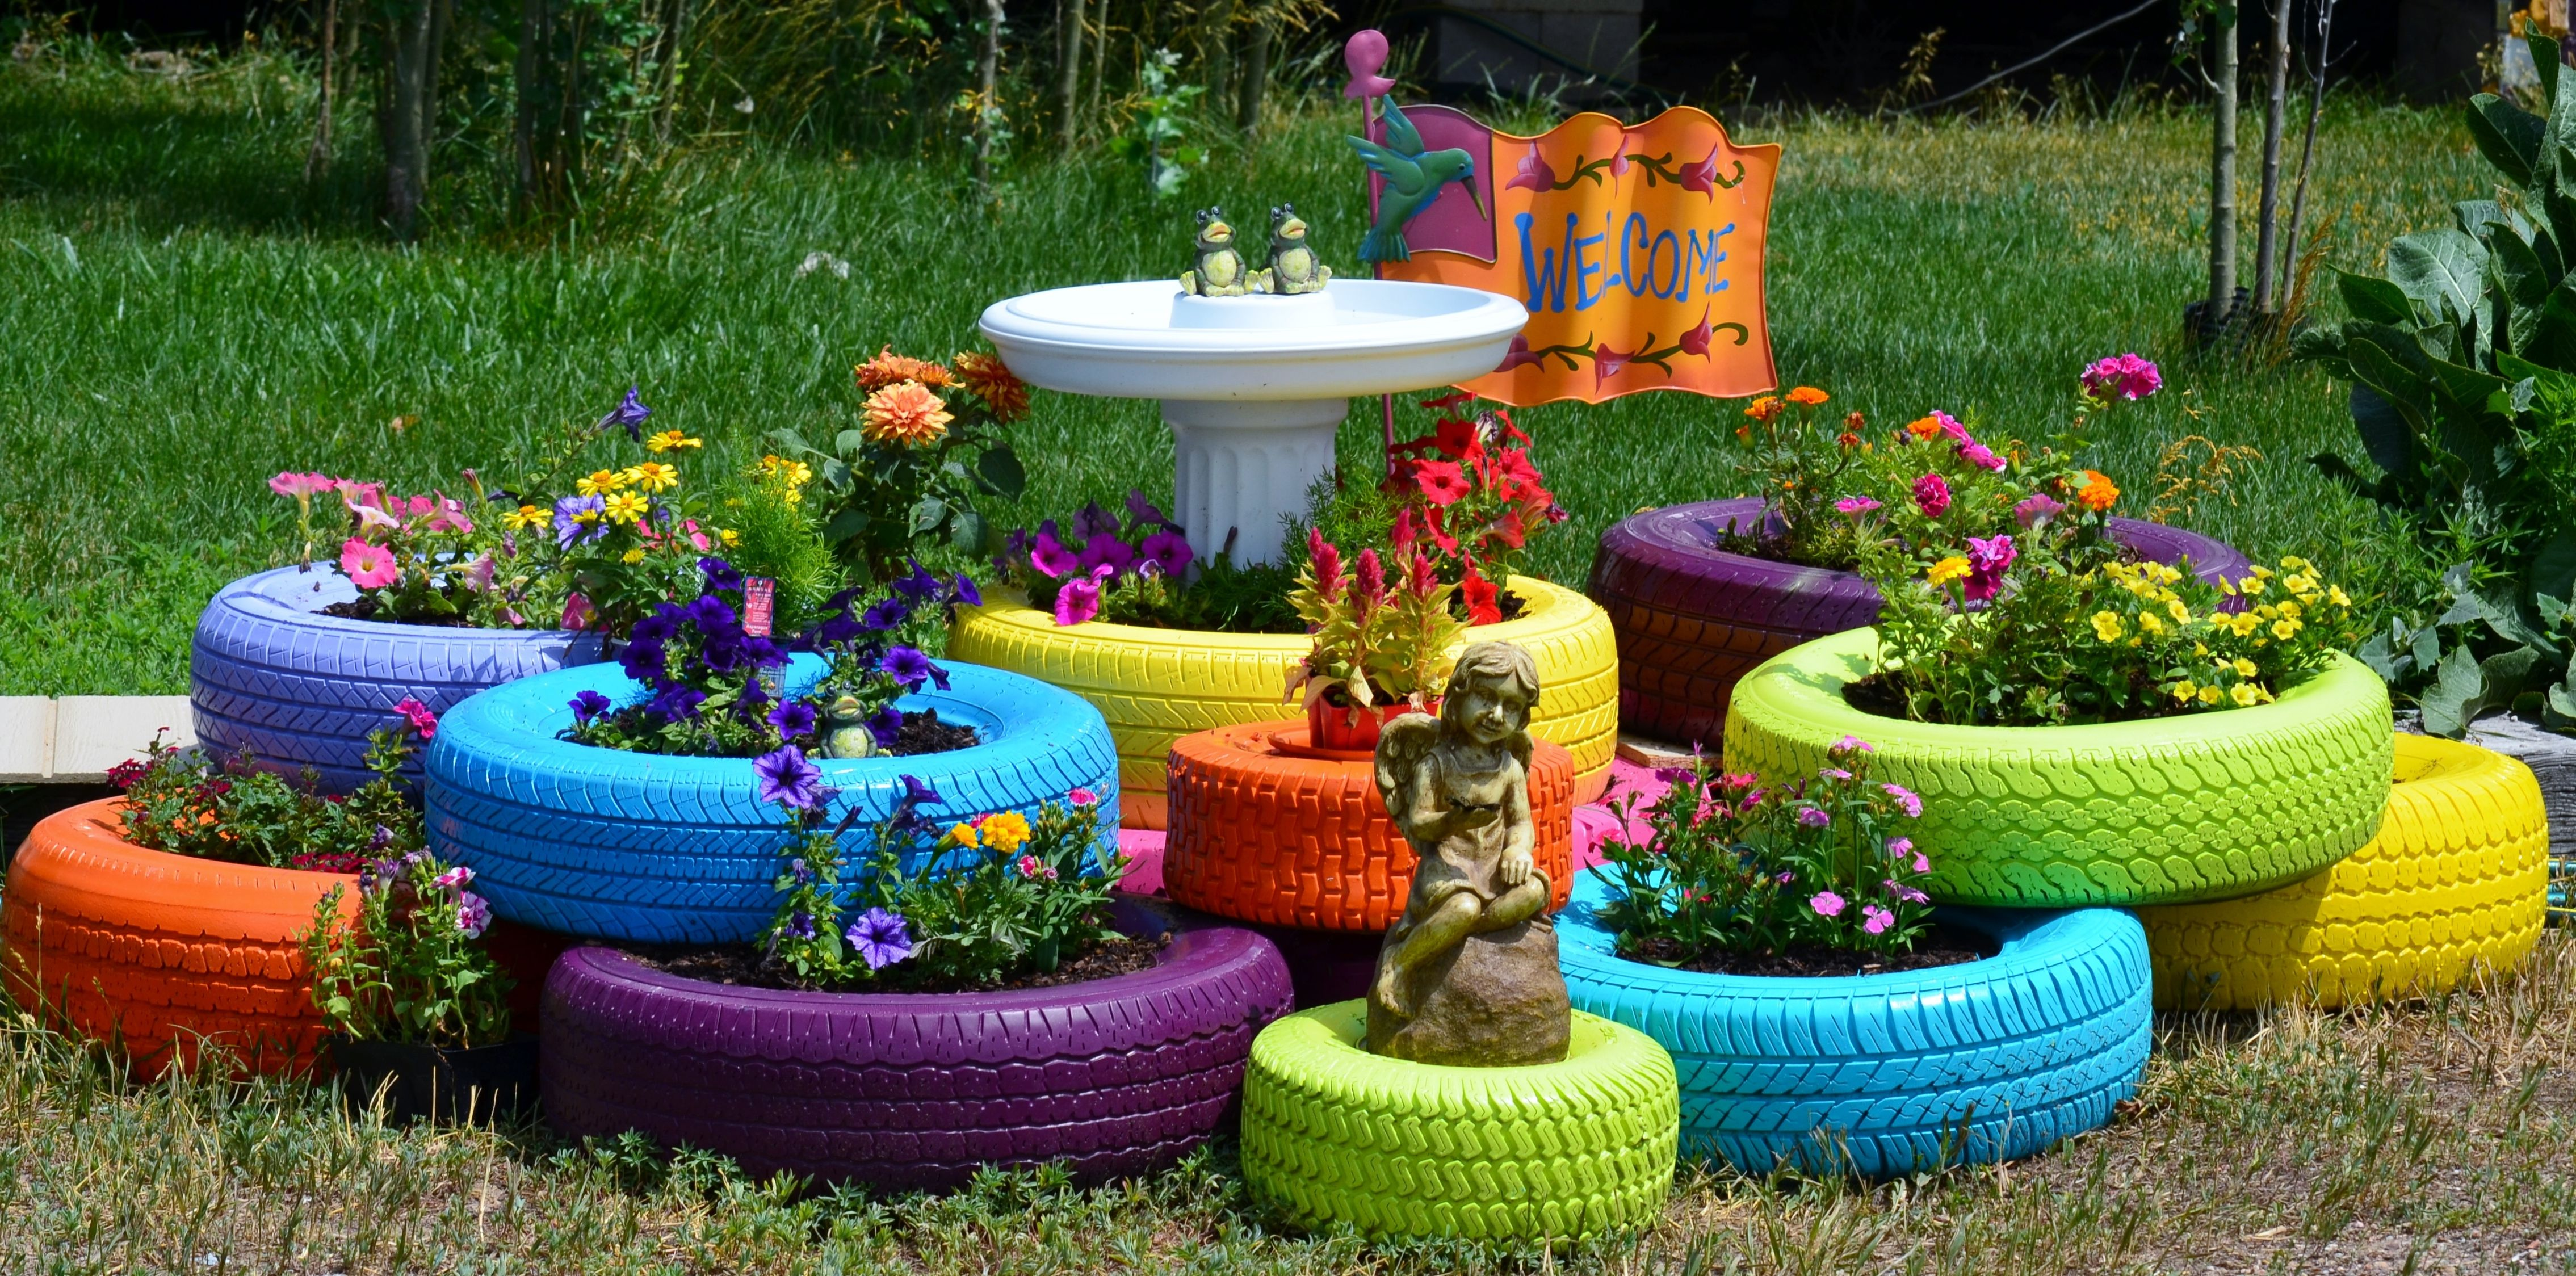 Flowerbed of old tires